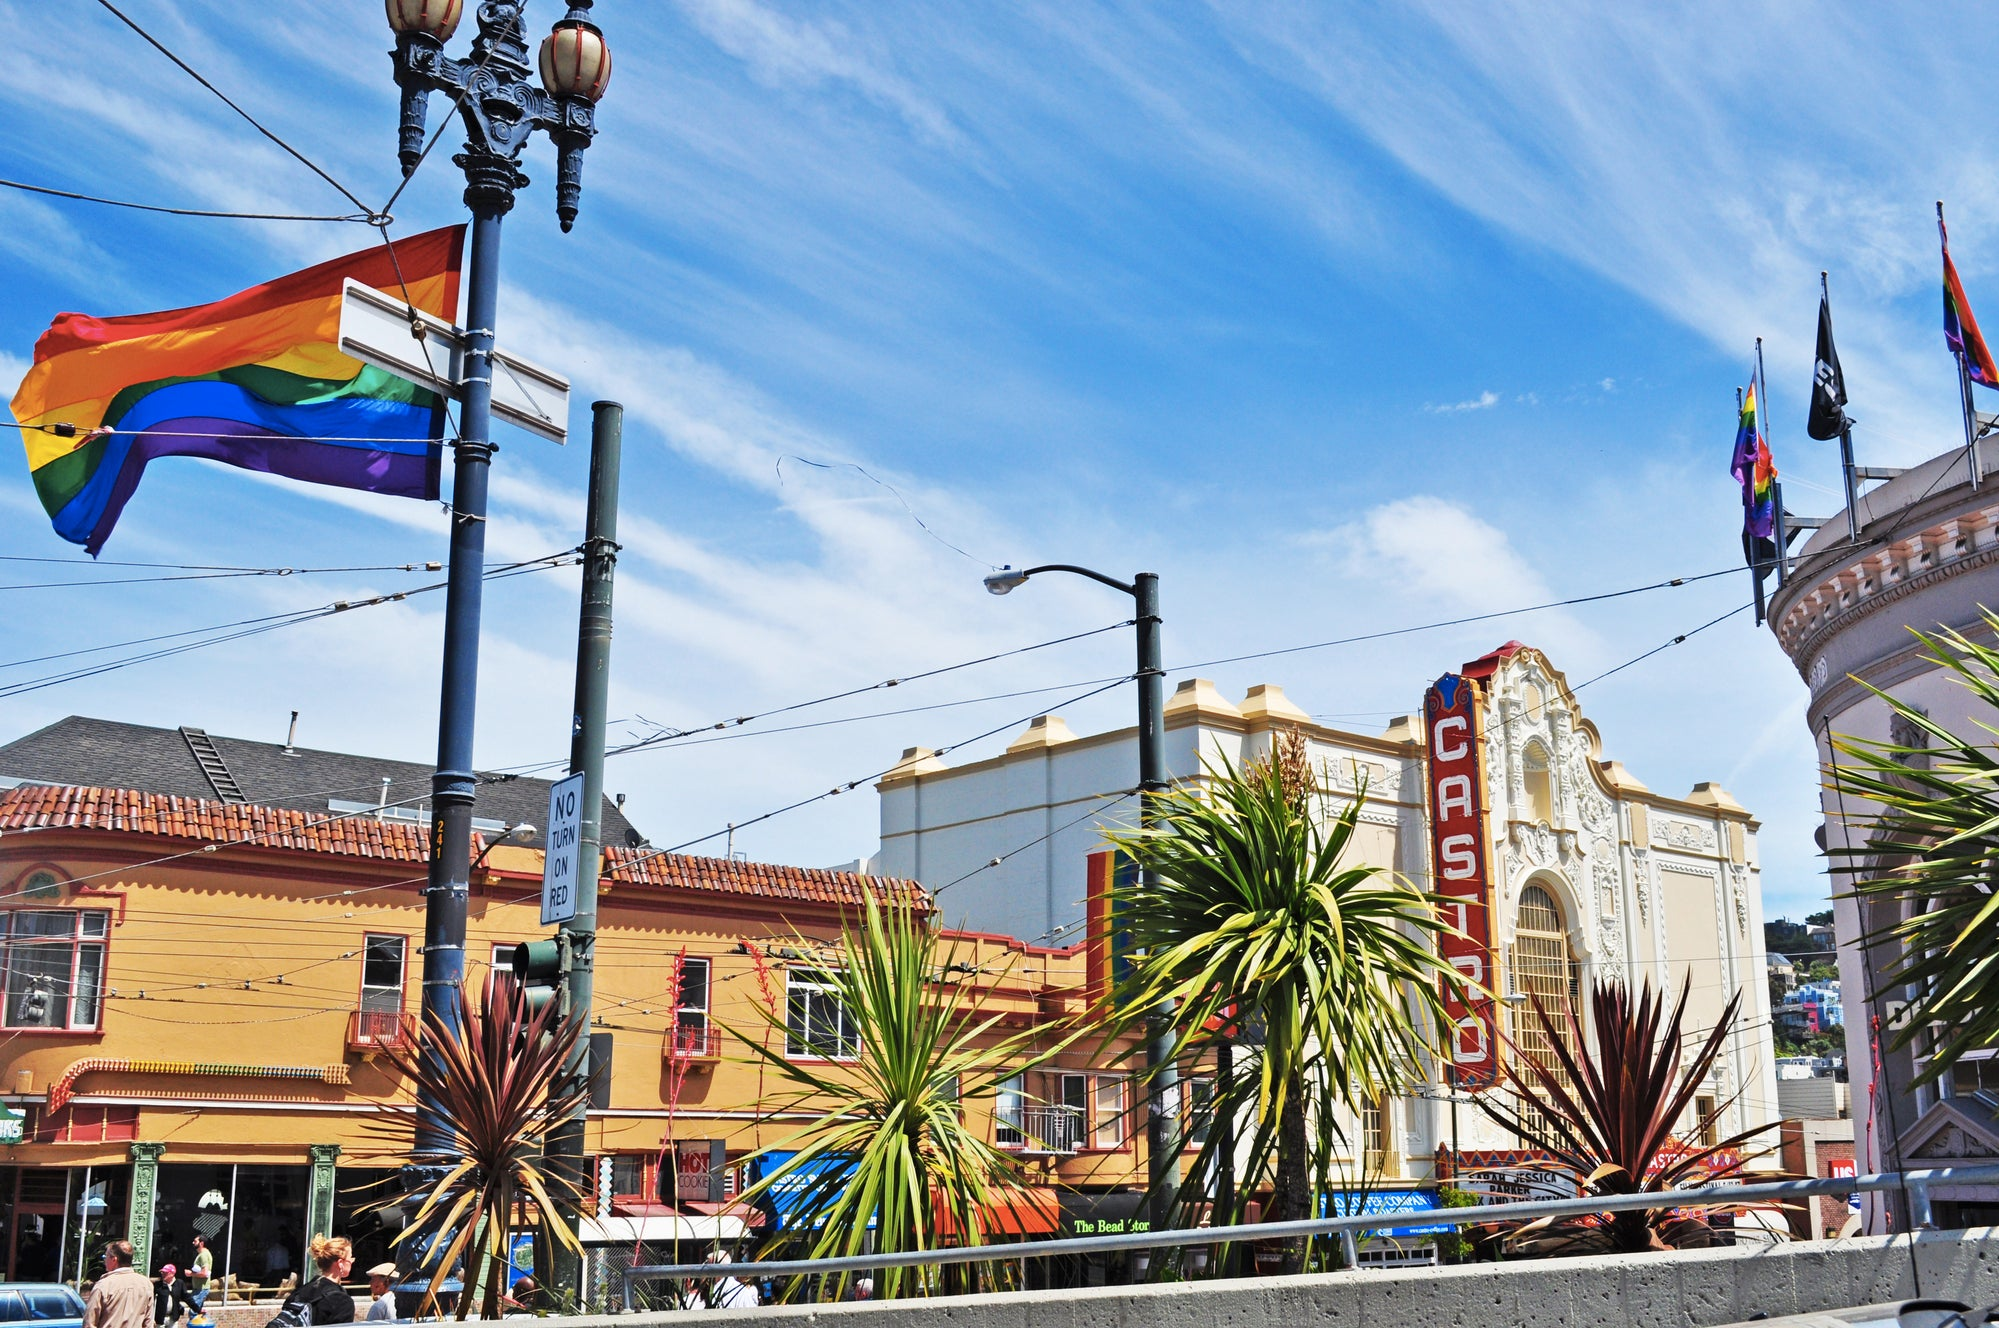 LGBTQ+ health networks helped make urban neighborhoods more resilient against COVID